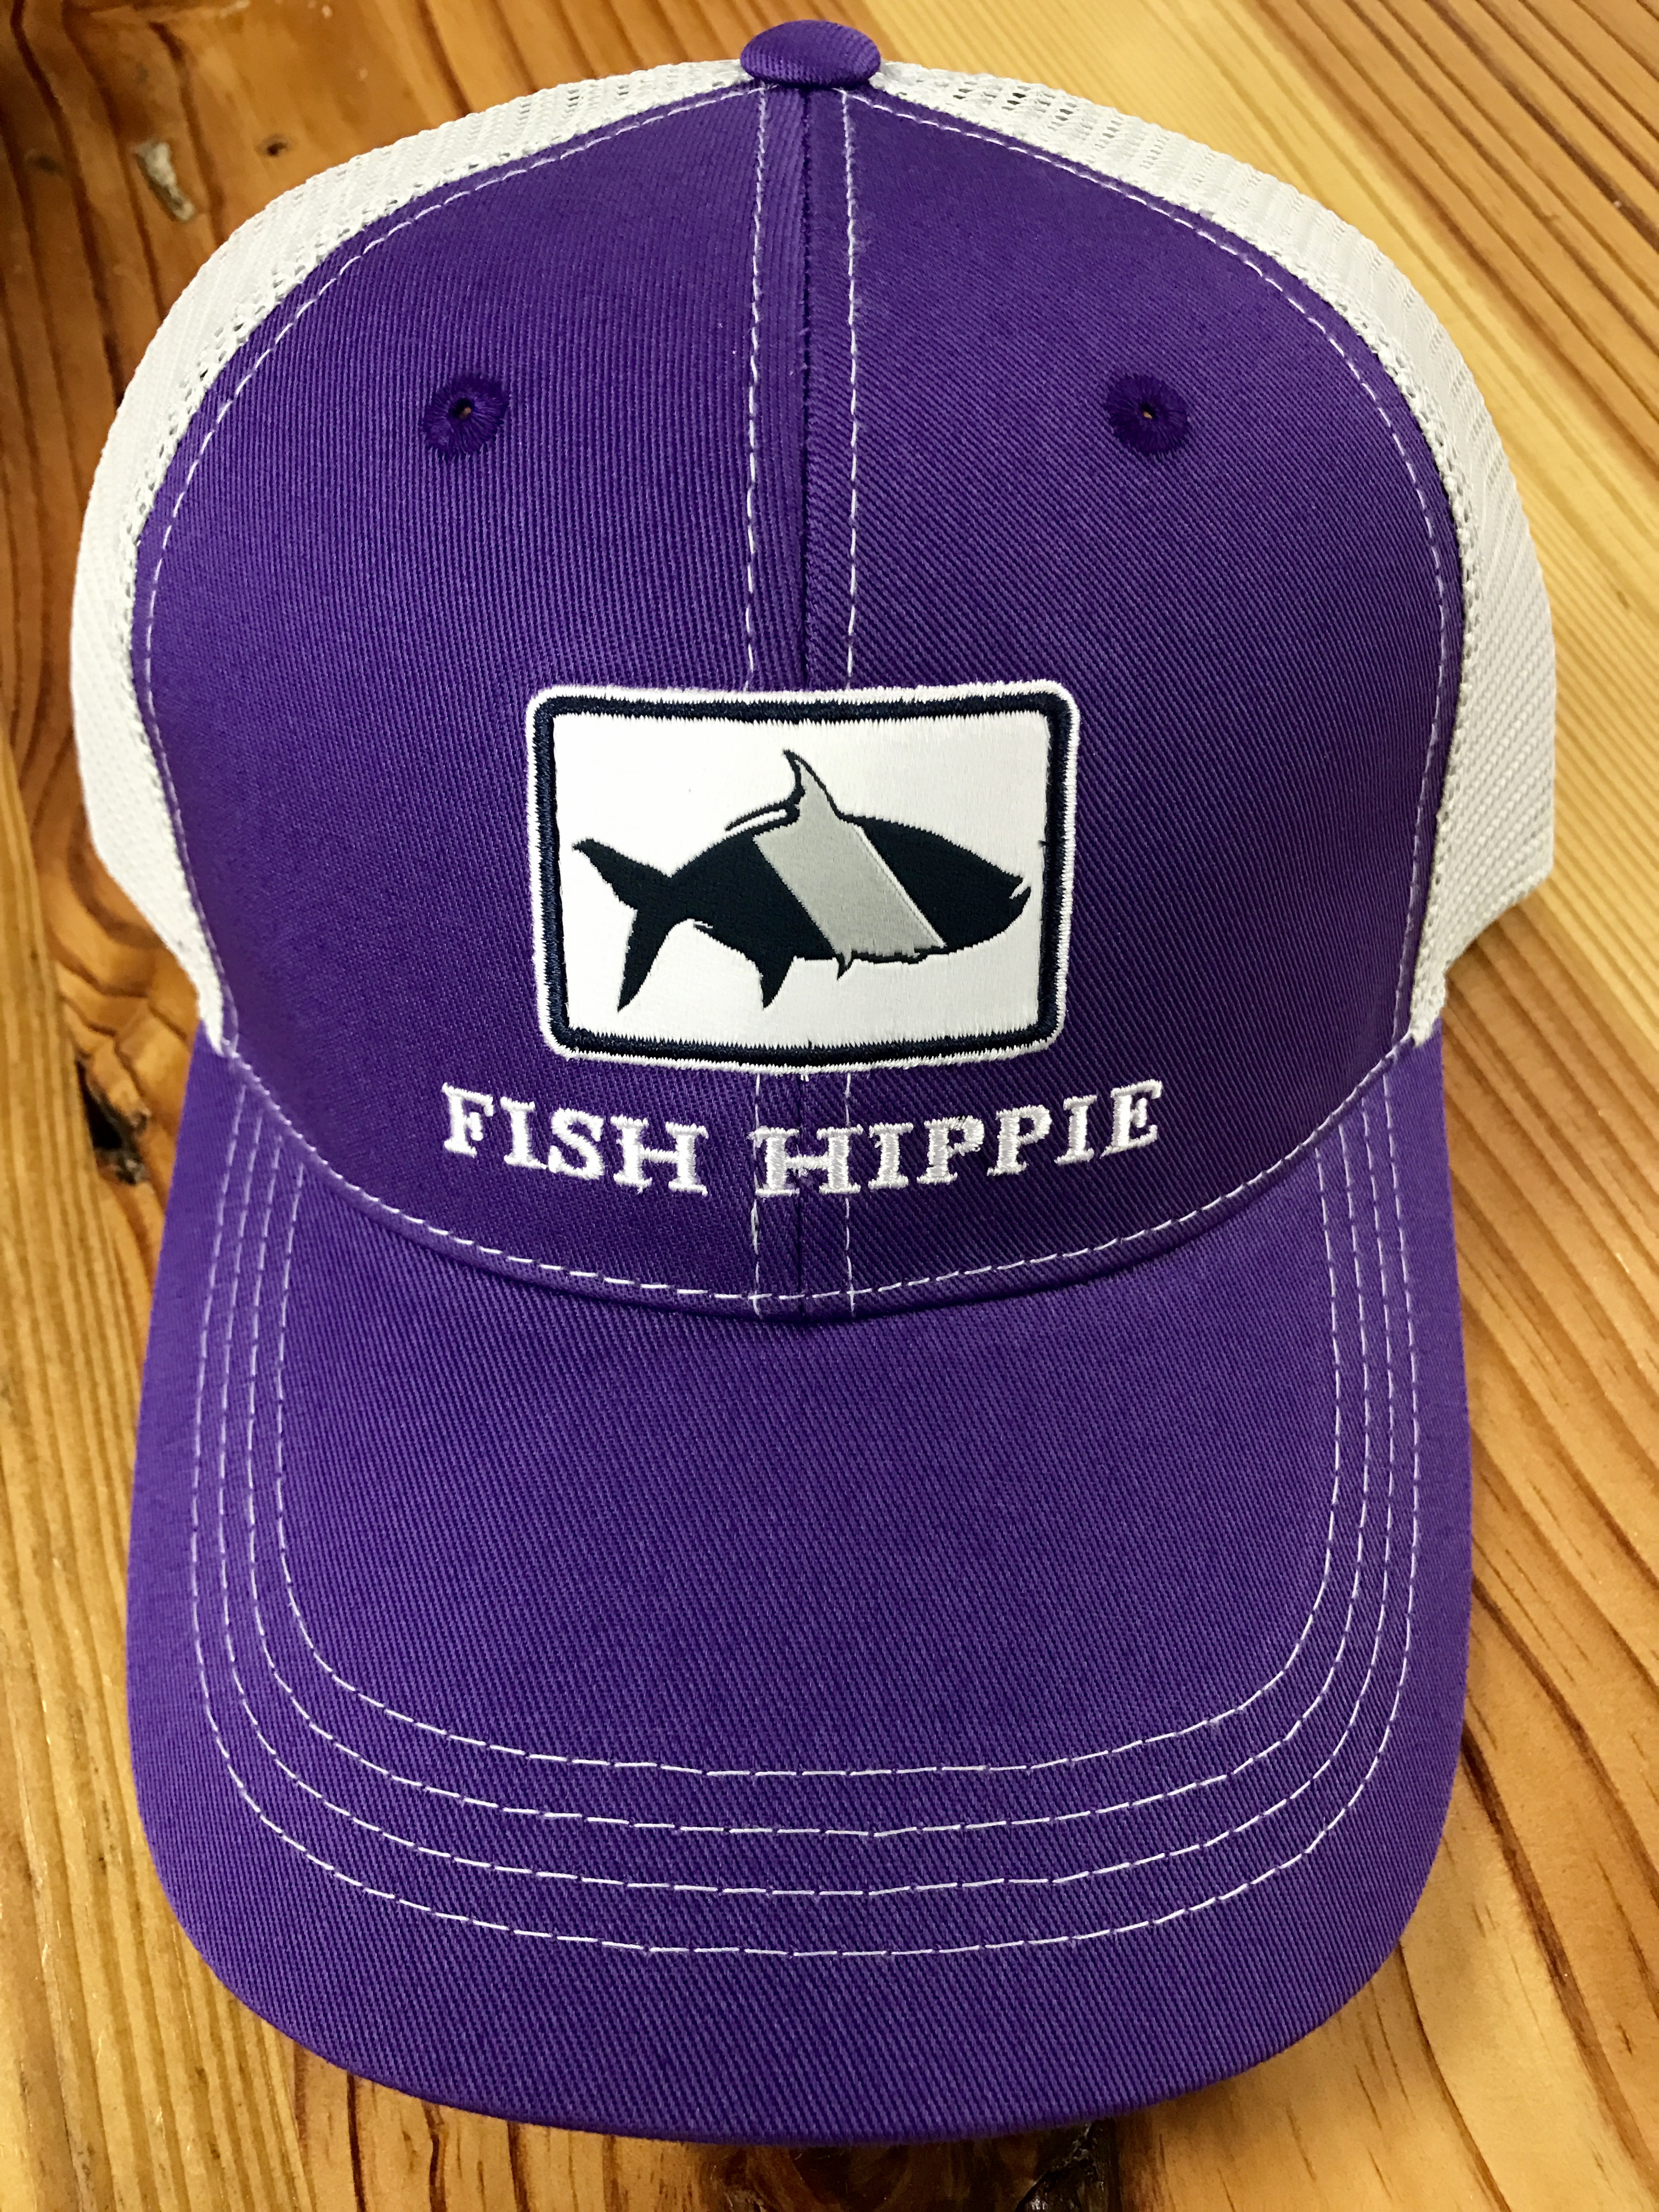 Fish Hippie Game Day Mesh Back Trucker Hat Purple - AG Outfitters NC f65b4405a388